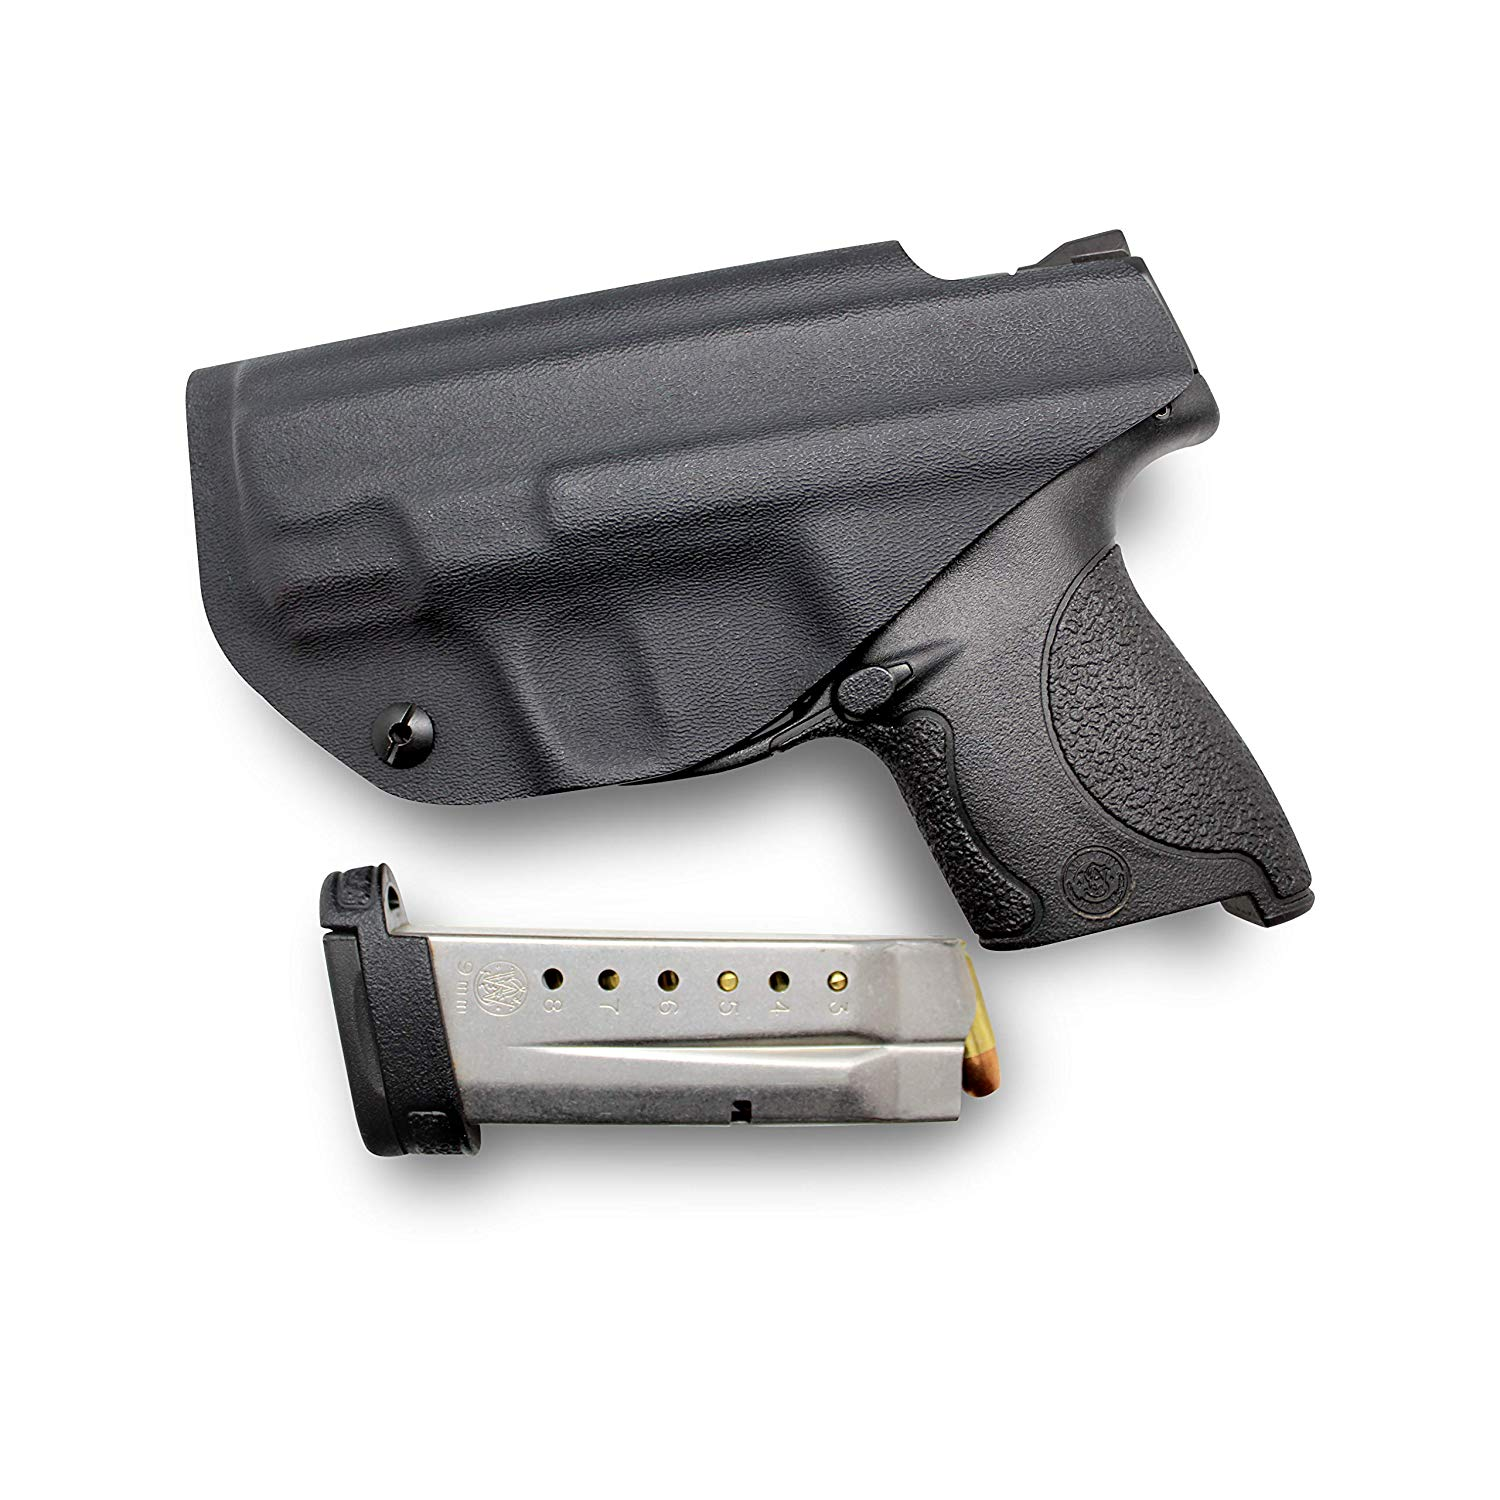 National Carry IWB Kydex S&W Shield Holster Smith Wesson M&P Shield  9mm/40SW Concealment Holster - $18 99 (Free S/H over $25)